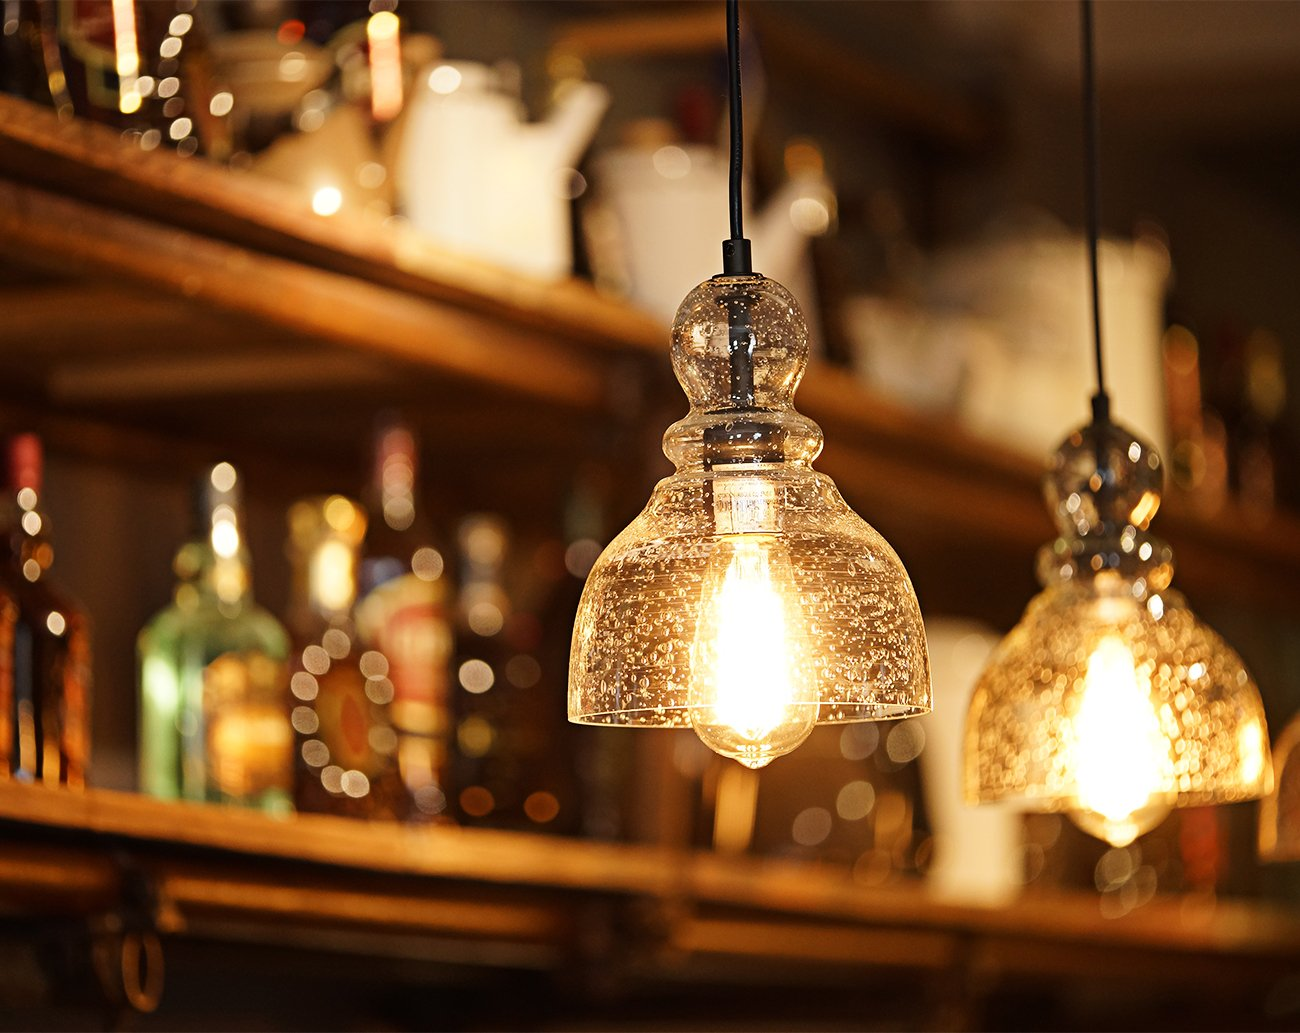 Lanros Industrial Mini Pendant Lighting with Handblown Clear Seeded Glass Shade, Adjustable Edison Farmhouse Kitchen Lamp for Kitchen Island, Restaurants, Hotels and Shops, 1-Pack by LANROS (Image #2)